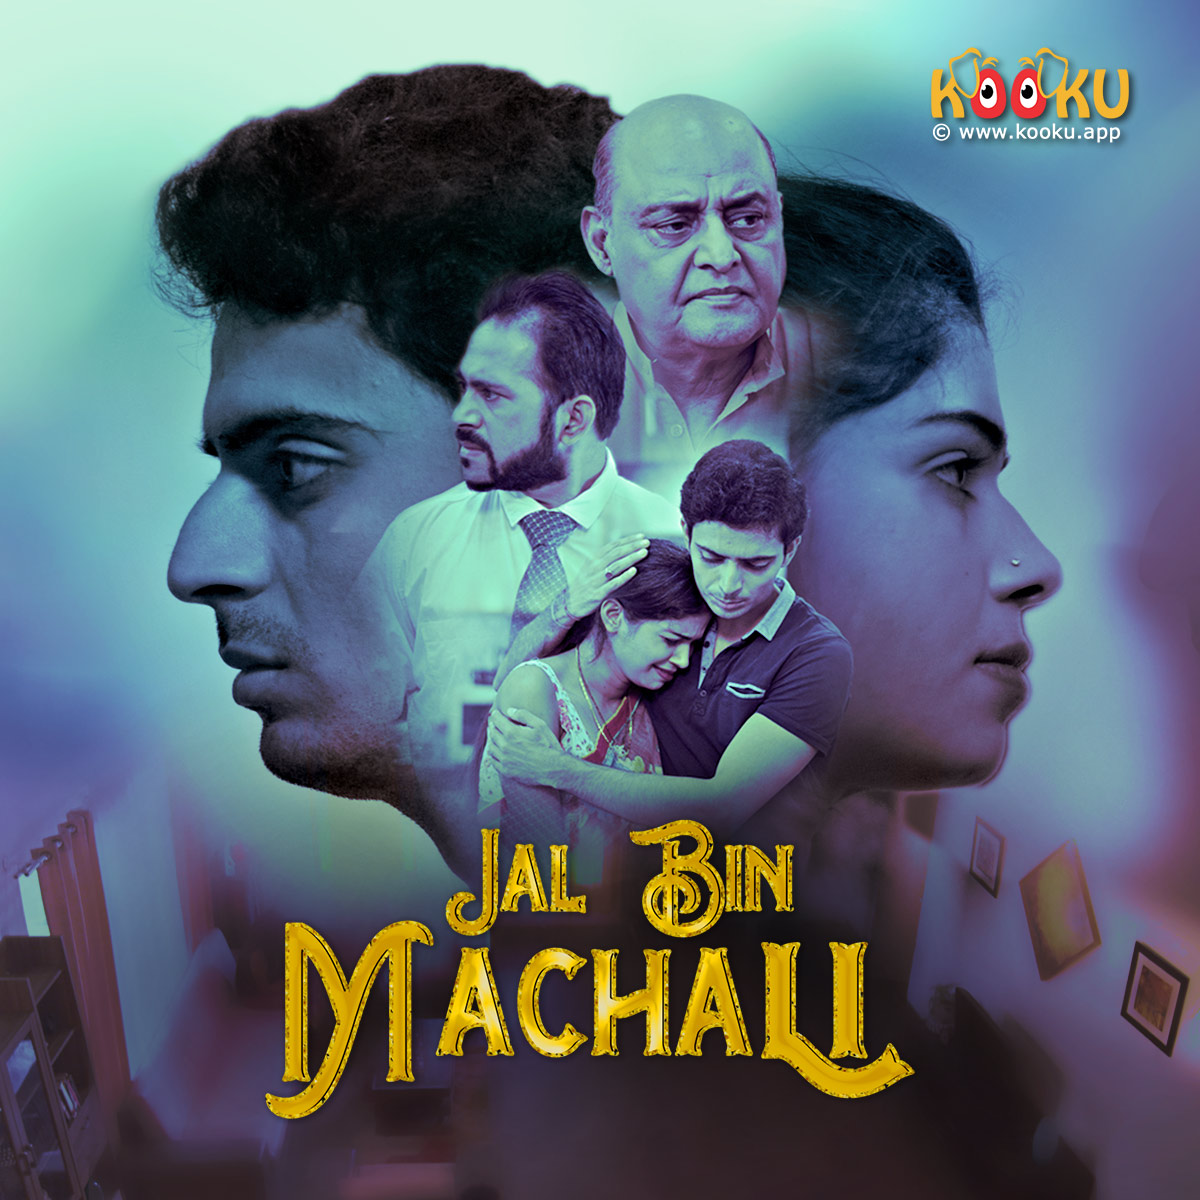 Jal Bin Machali 2020 S01 Hindi Kooku App Web Series Official Trailer 720p HDRip Download